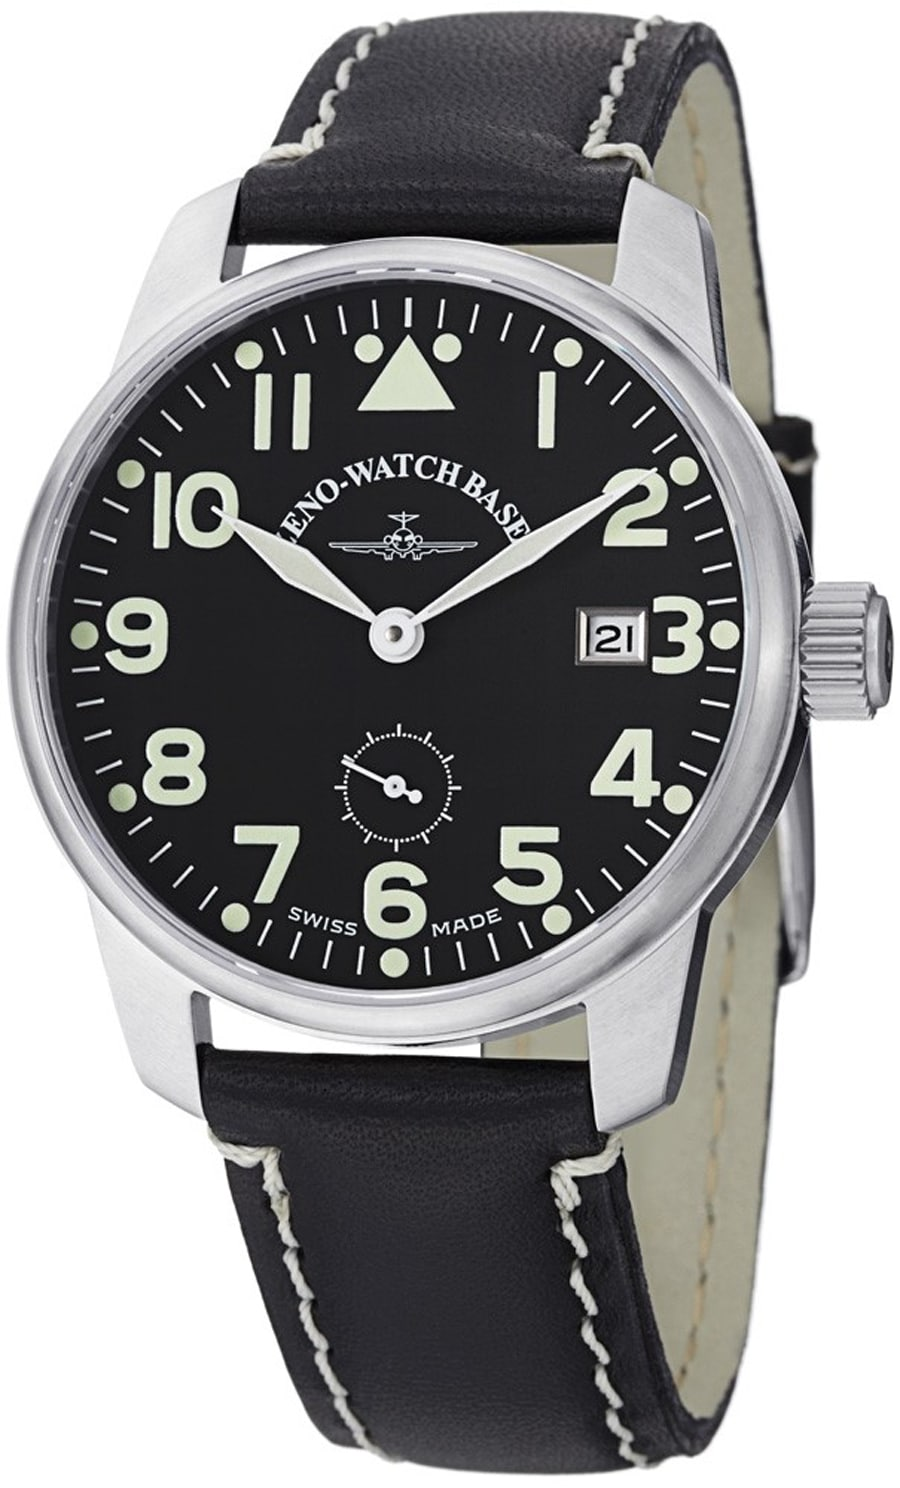 Zeno Watch Basel: Pilot Classic Winder Navigator Limited Edition